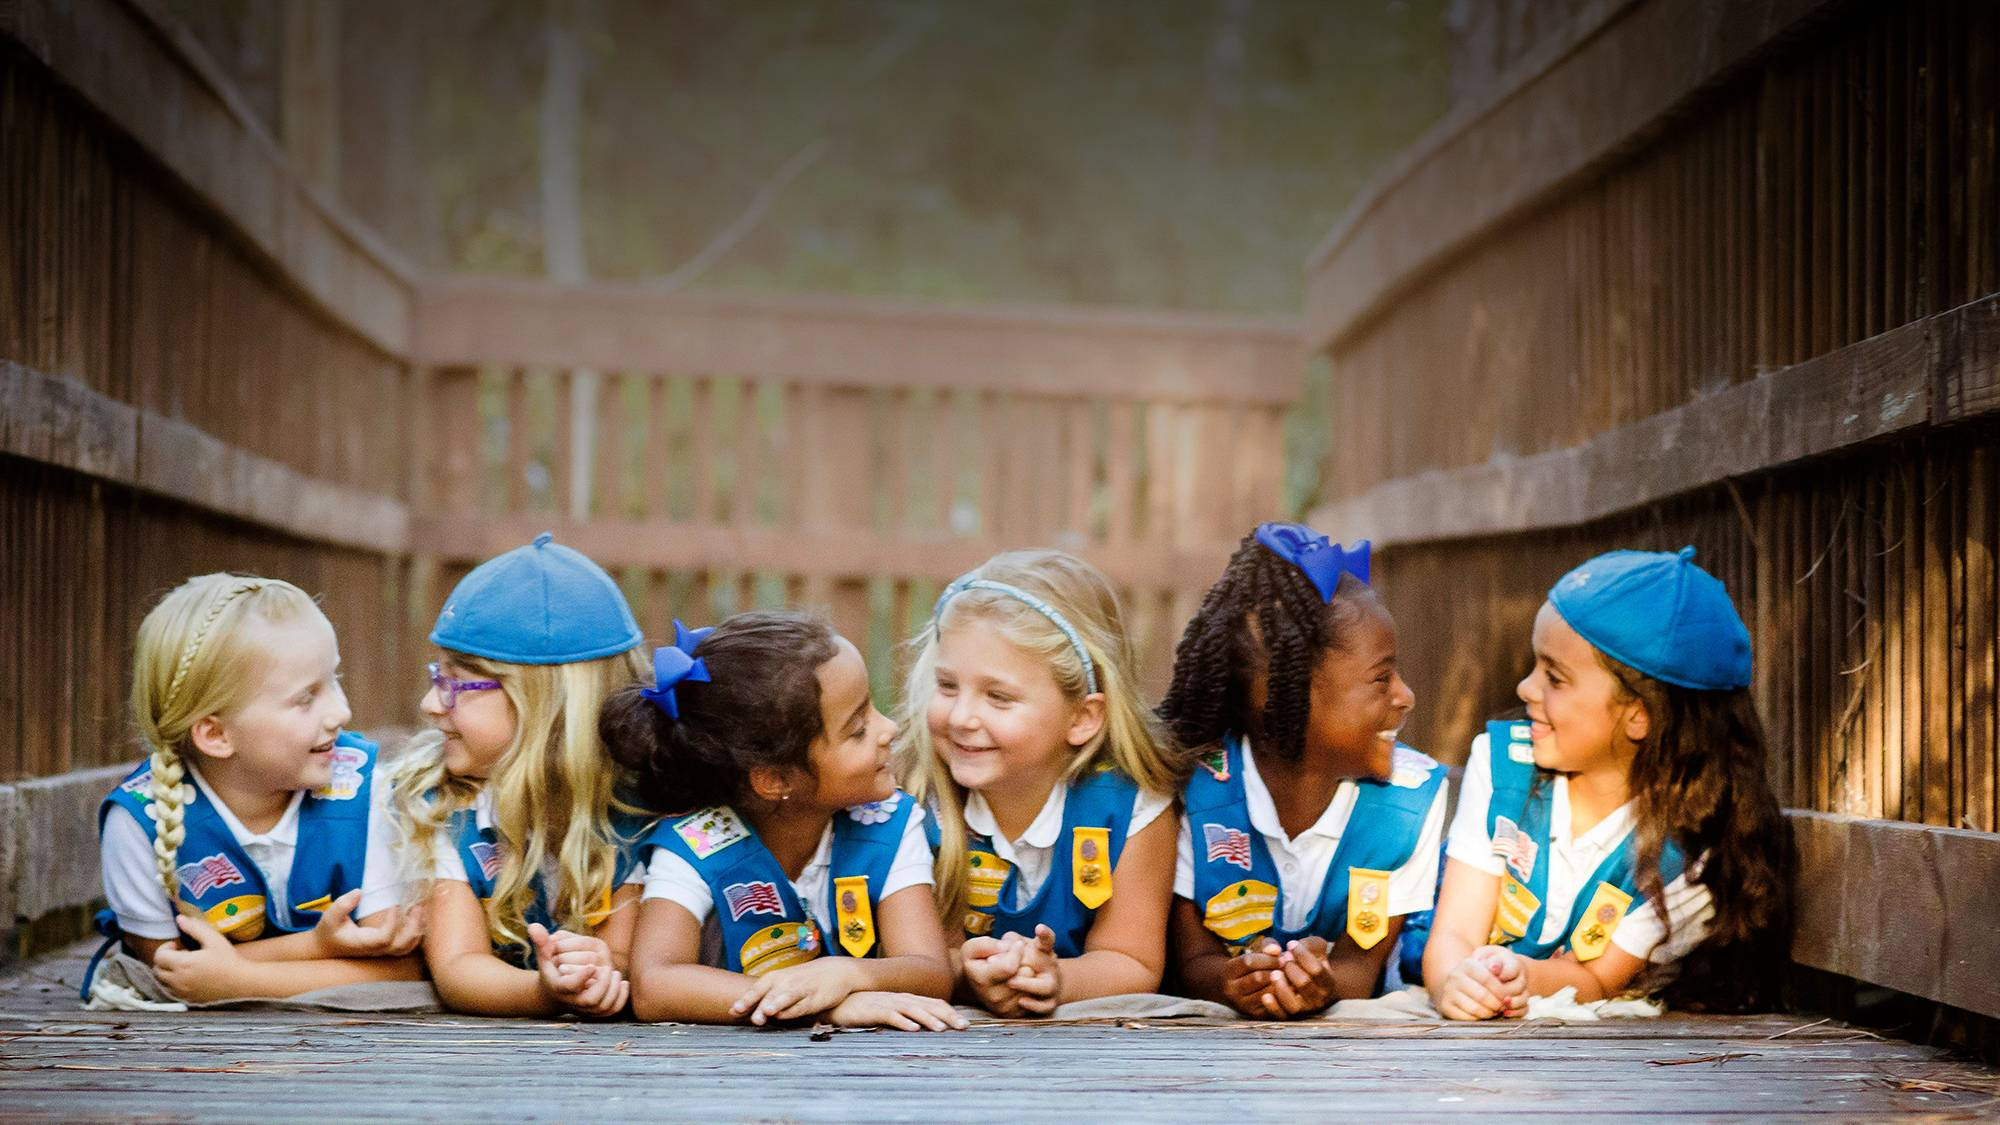 Join Girl Scouts: Become a Girl Scout